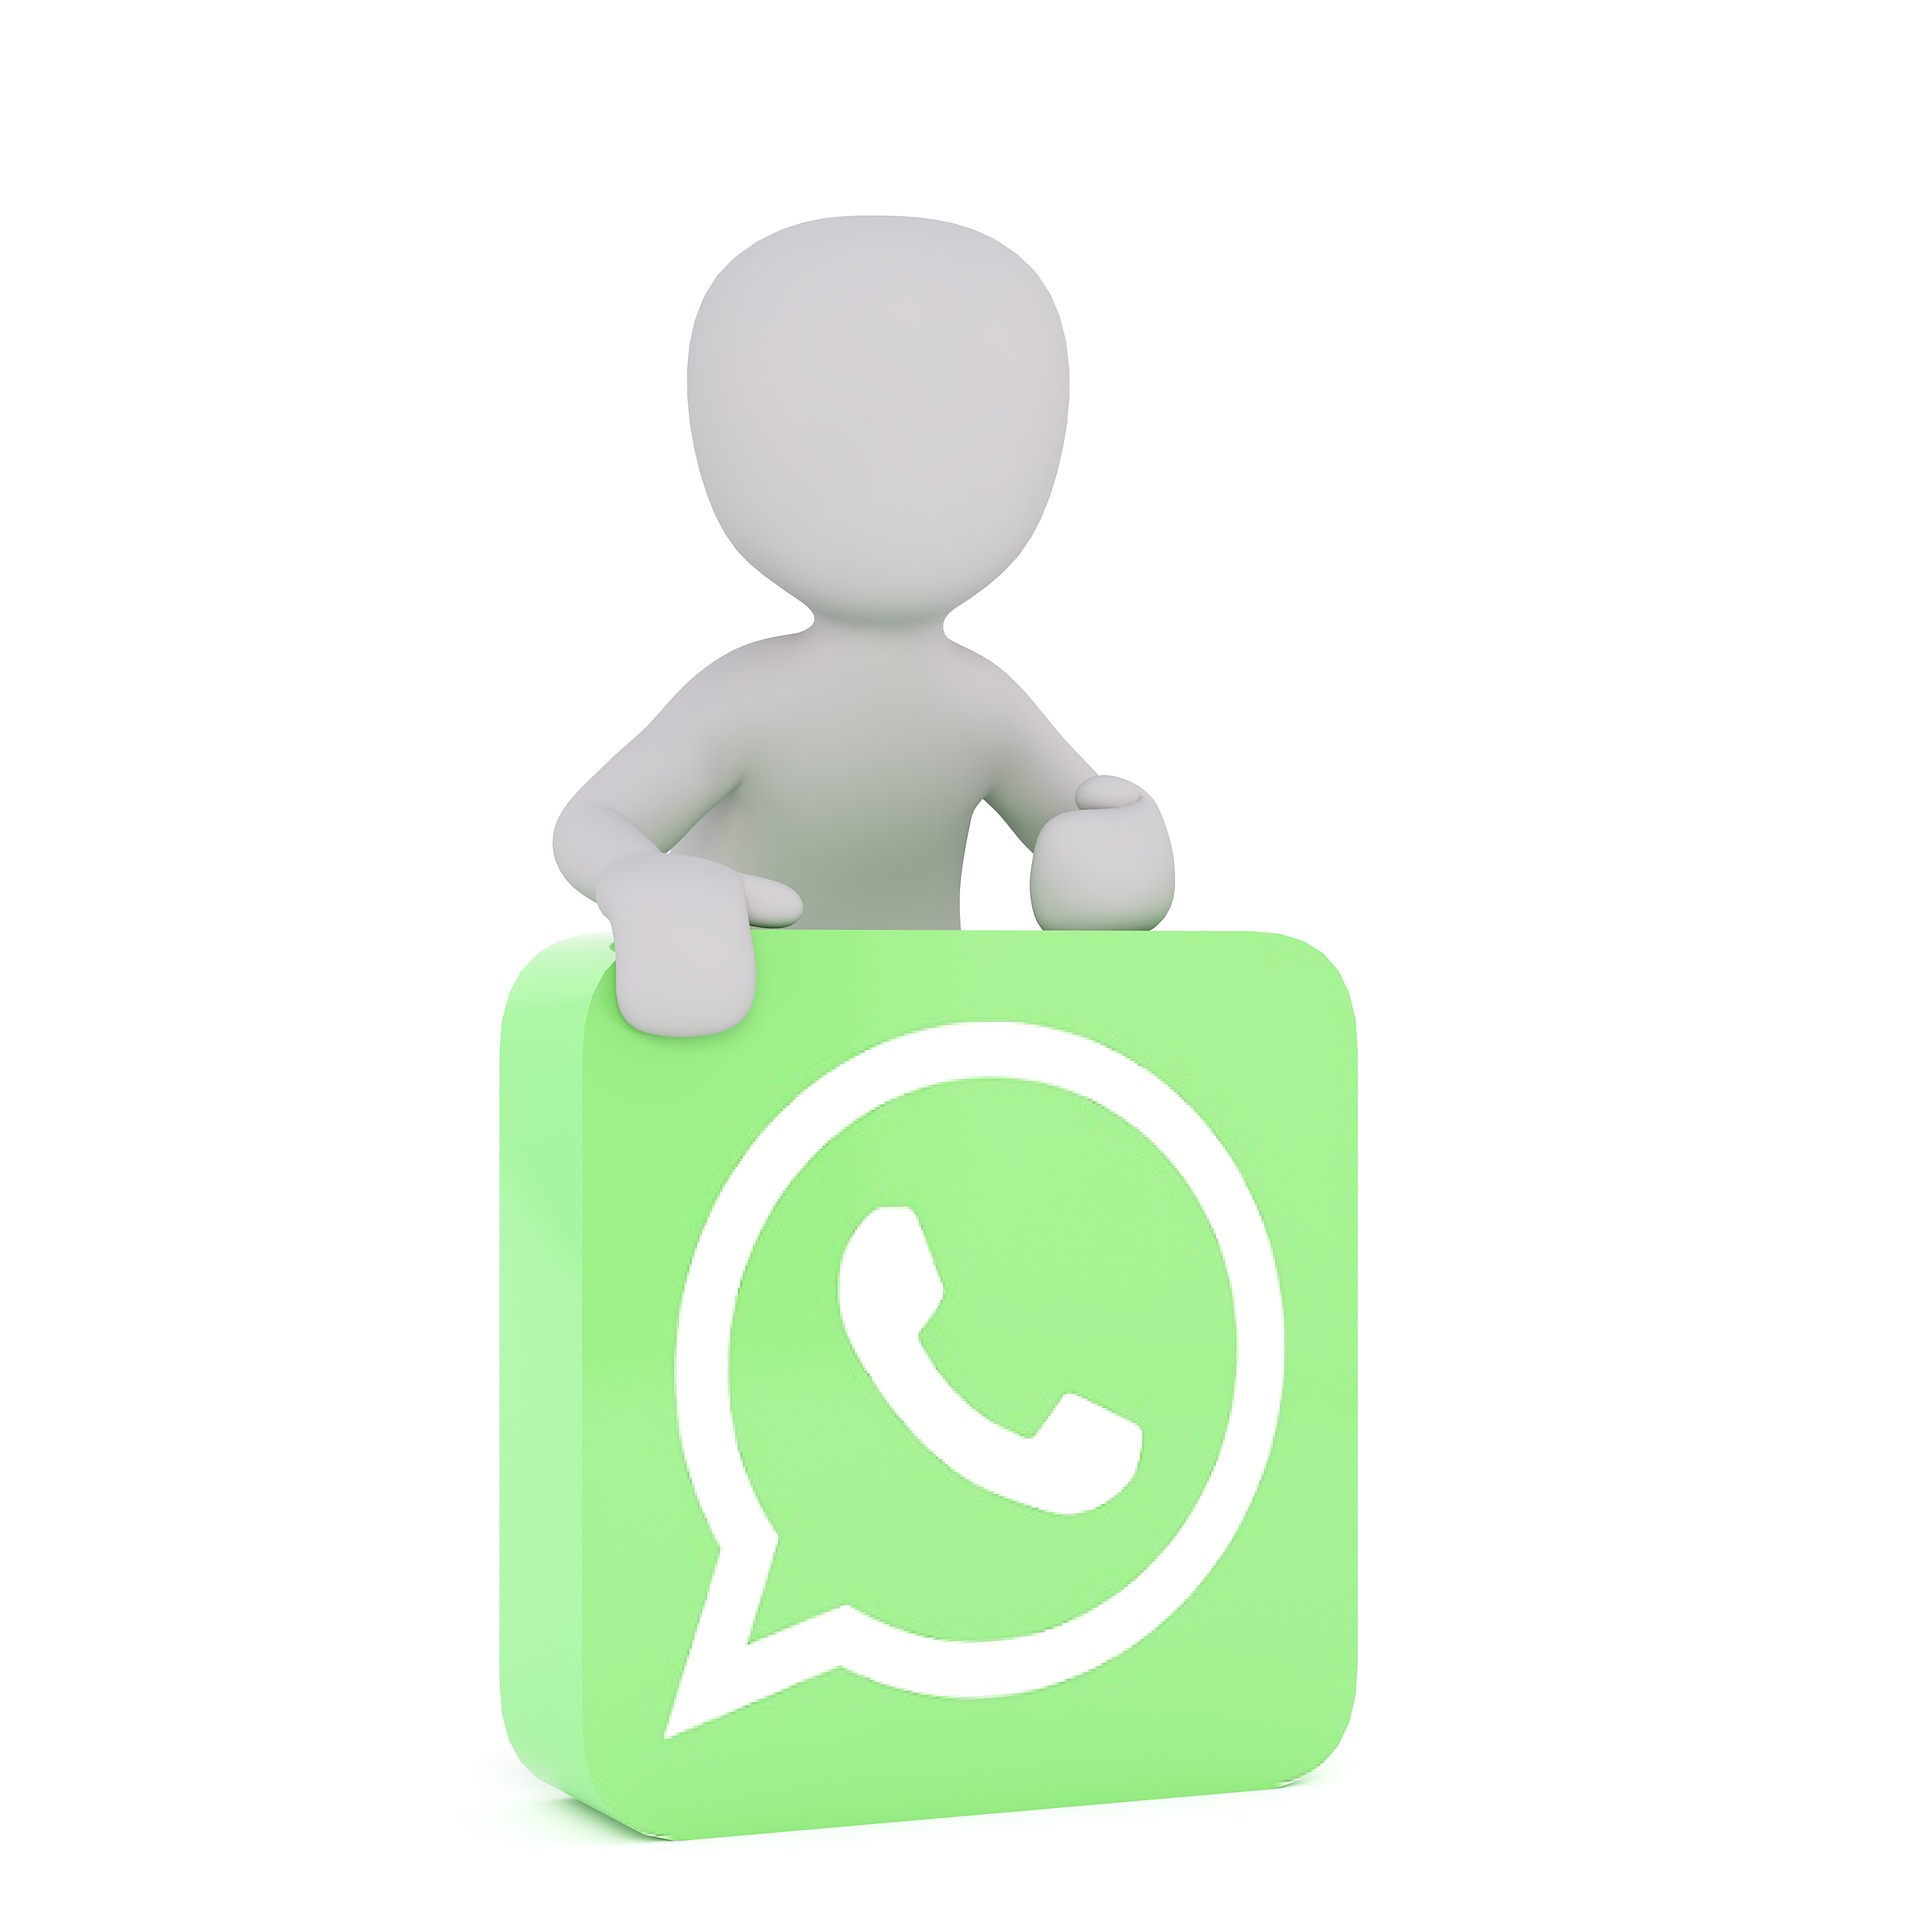 Top 5 WhatsApp ChatBots to take inspiration from